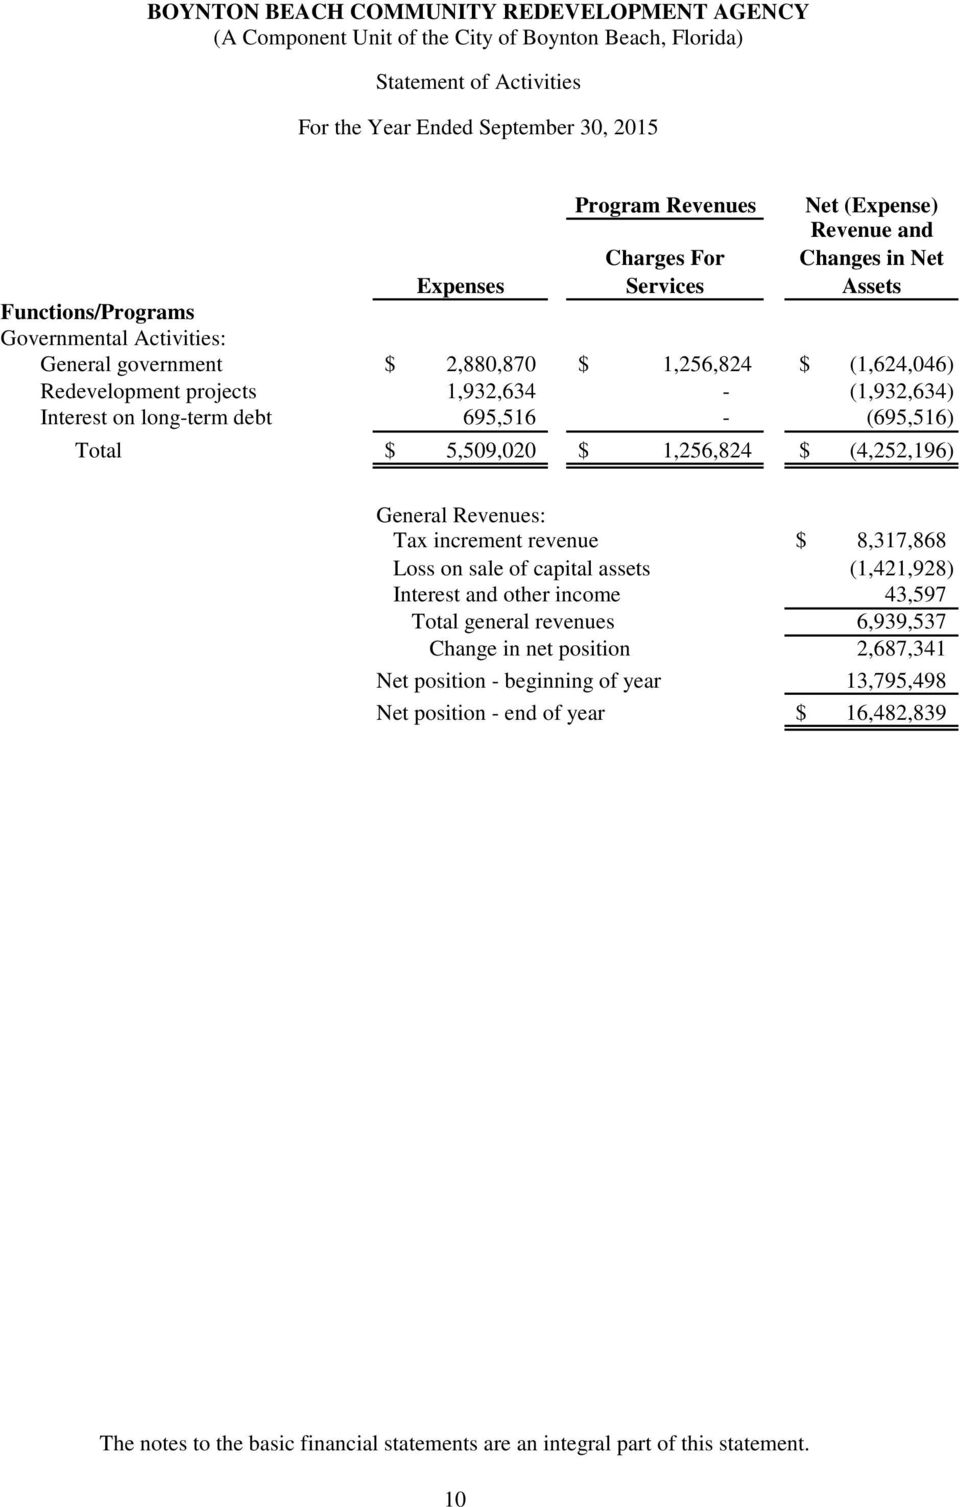 (4,252,196) General Revenues: Tax increment revenue $ 8,317,868 Loss on sale of capital assets (1,421,928) Interest and other income 43,597 Total general revenues 6,939,537 Change in